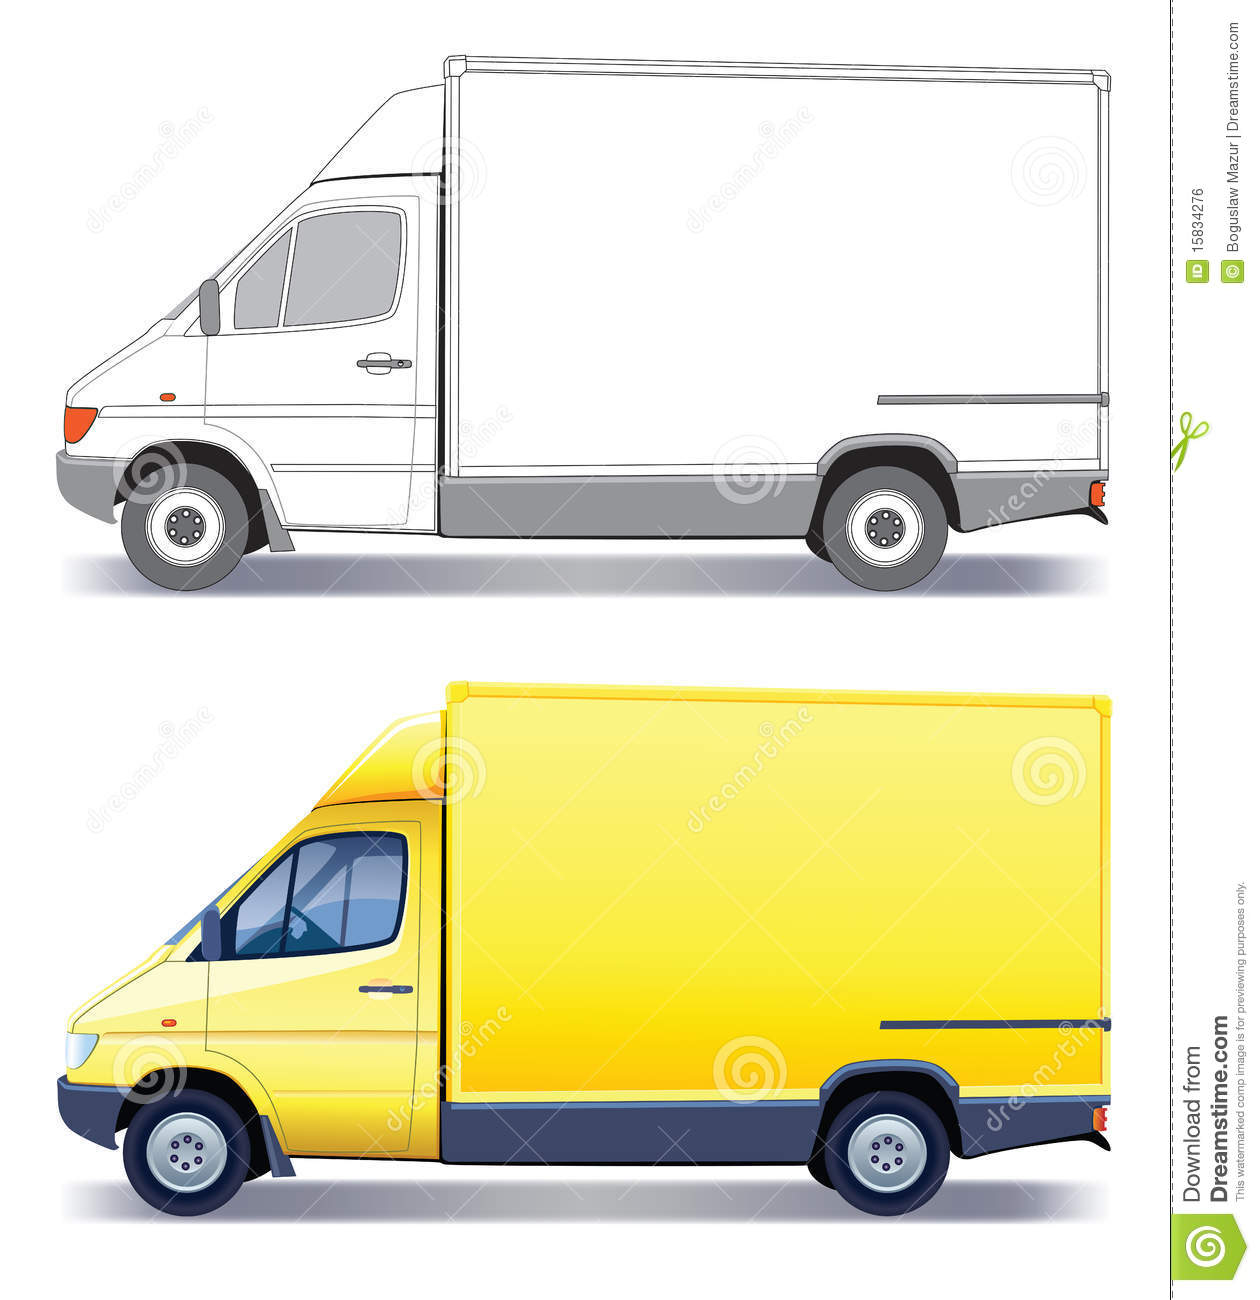 toy lorry videos with Royalty Free Stock Image Delivery Truck Image15834276 on Stock Image Birthday Gift Delivery Truck Illustration Cartoon Car Carrying Delivering Red Christmas Present Trailer Image36757971 as well Cartoon Truck Isolated On White Background Vector 3347553 also Watch moreover Colorful Toy Truck Image 4128490 together with File Benton Brothers Transport Scania 124L truck with Lys Line container on a flatbed trailer  22 March 2009.